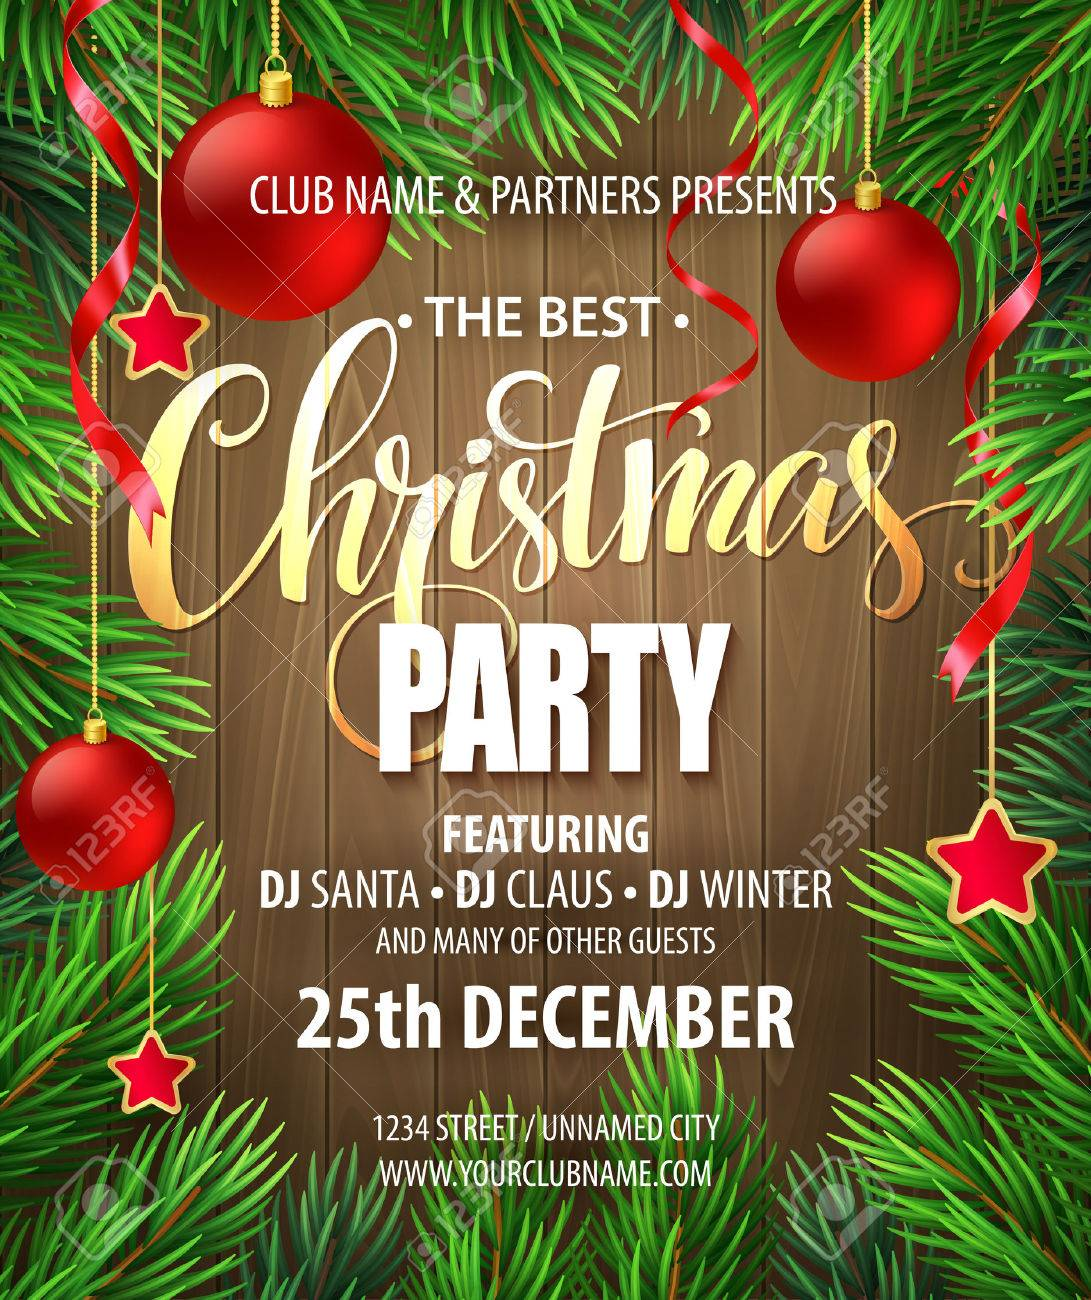 christmas party poster design template vector illustration eps christmas party poster design template vector illustration eps10 stock vector 48536948